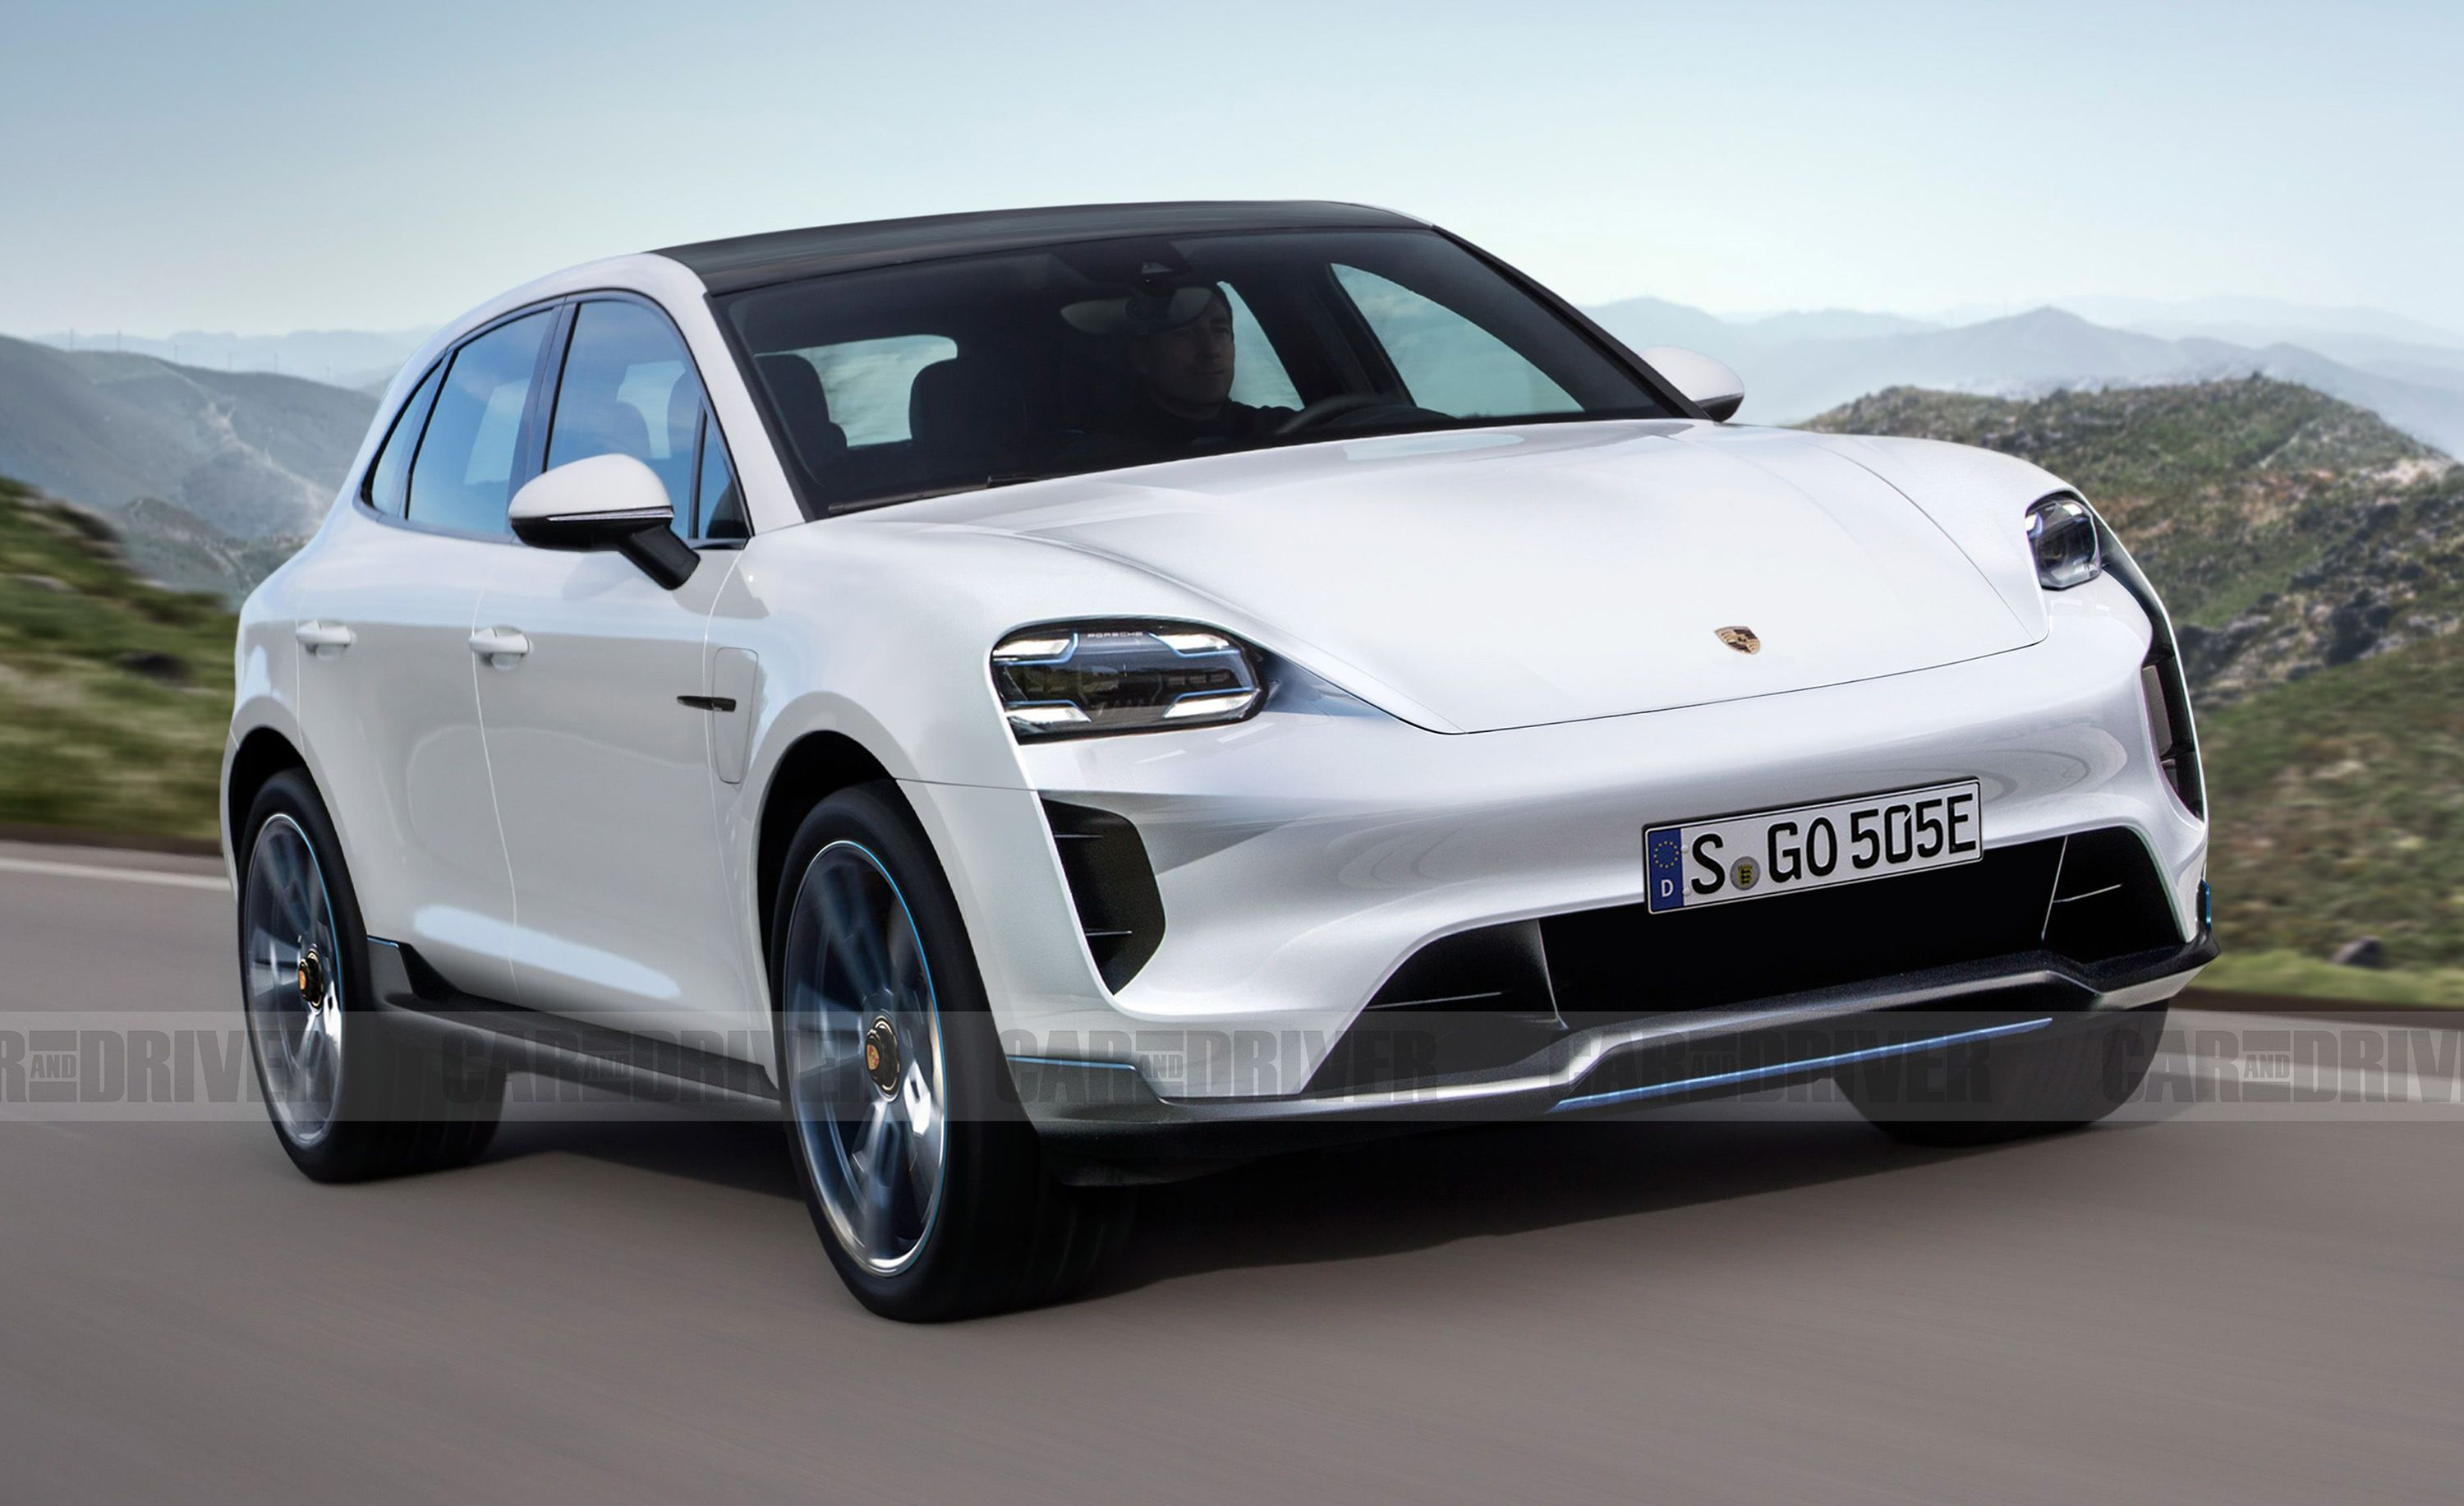 Porsche Macan Crossover Will Be Fully Electric in Next